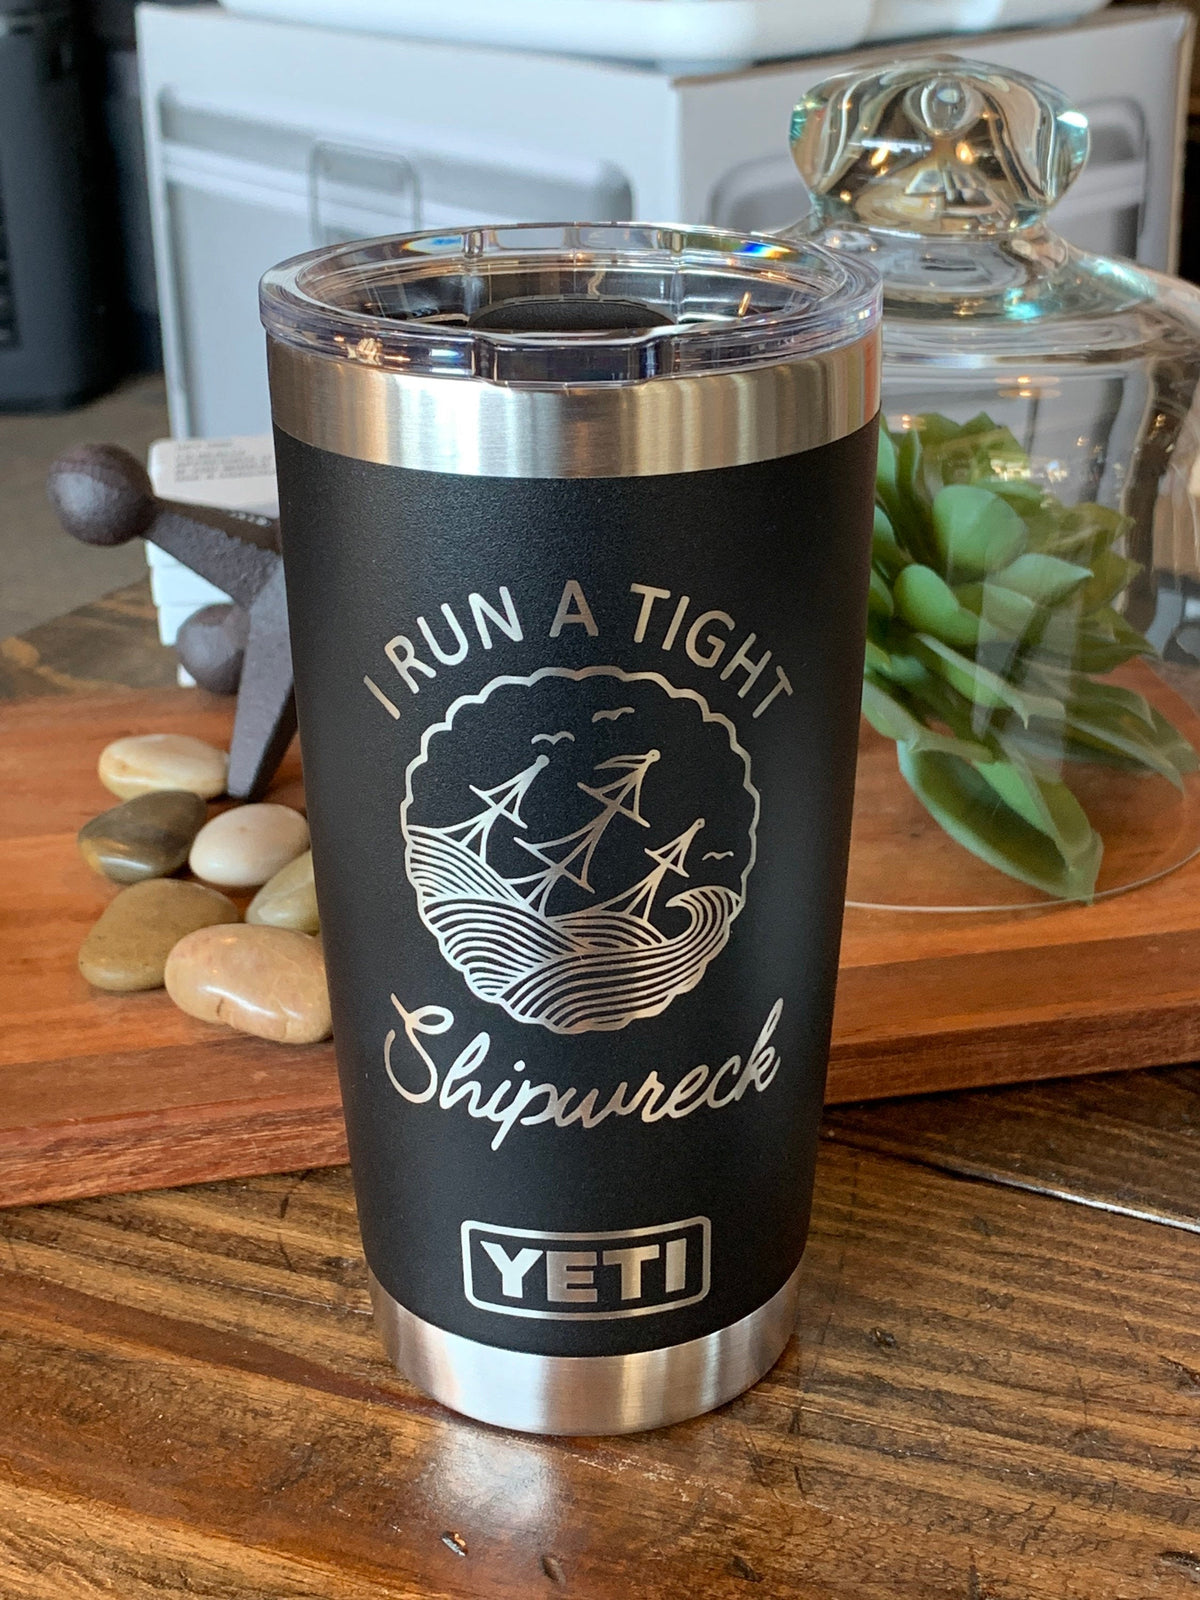 Laser Engraved Authentic YETI Rambler - I Run a TIGHT SHIPWRECK